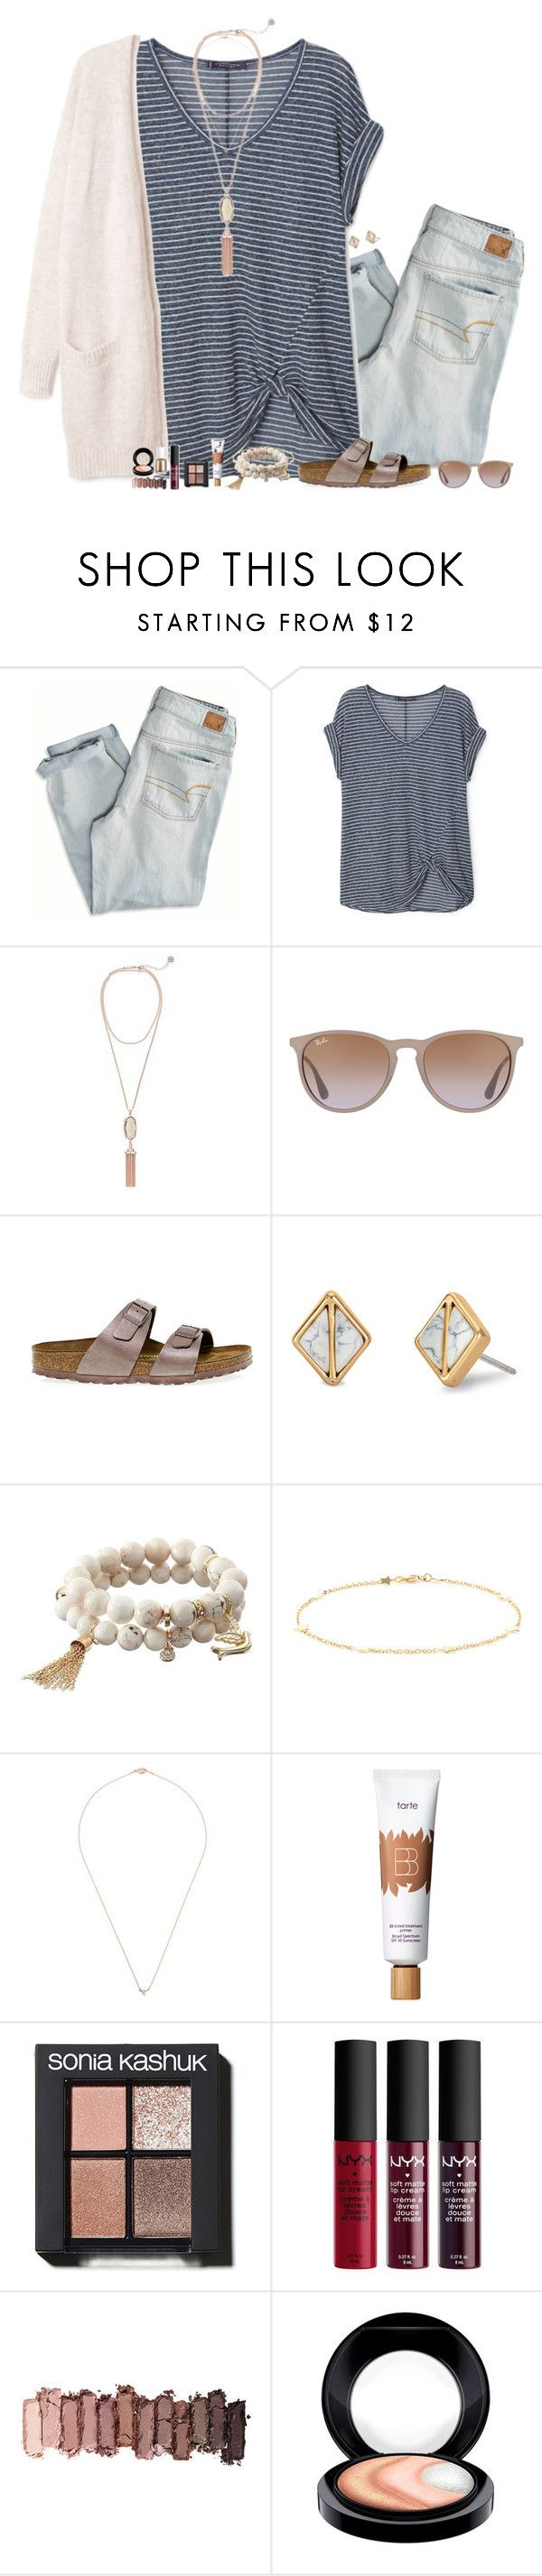 """Does anyone want me to do a face reveal?"" by lovelyl4uren ❤ liked on Polyvore featuring American Eagle Outfitters, Violeta by Mango, Kendra Scott, Ray-Ban, Birkenstock, Stella & Dot, Apt. 9, Luis Miguel Howard, tarte and Sonia Kashuk"